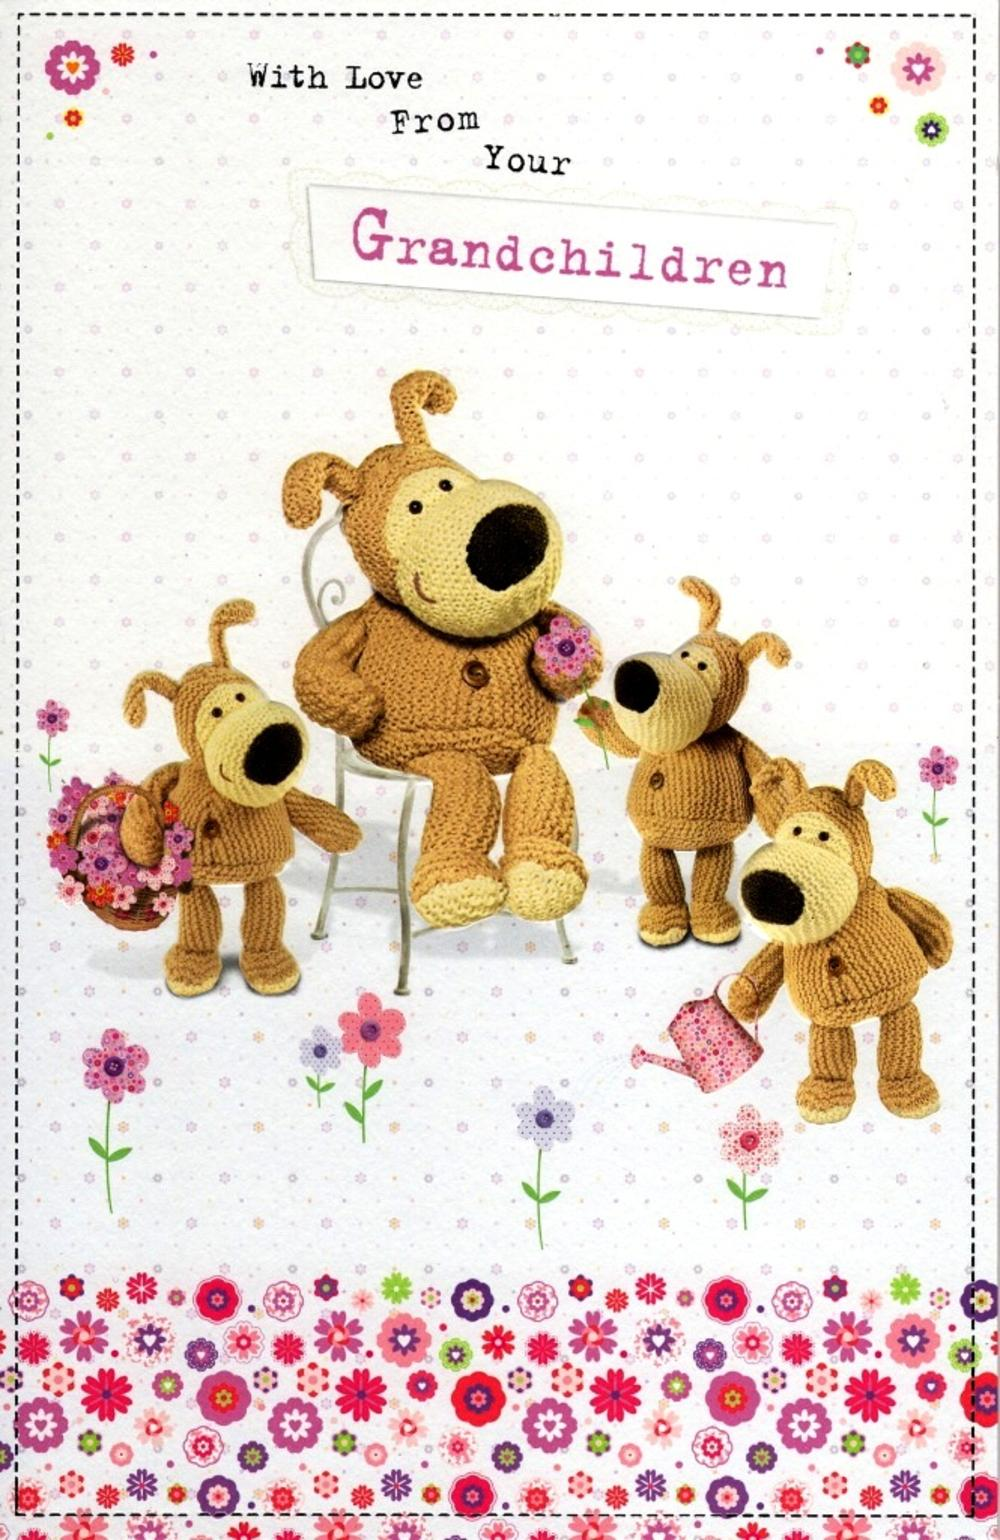 Boofle Mother's Day Card From Your Grandchildren